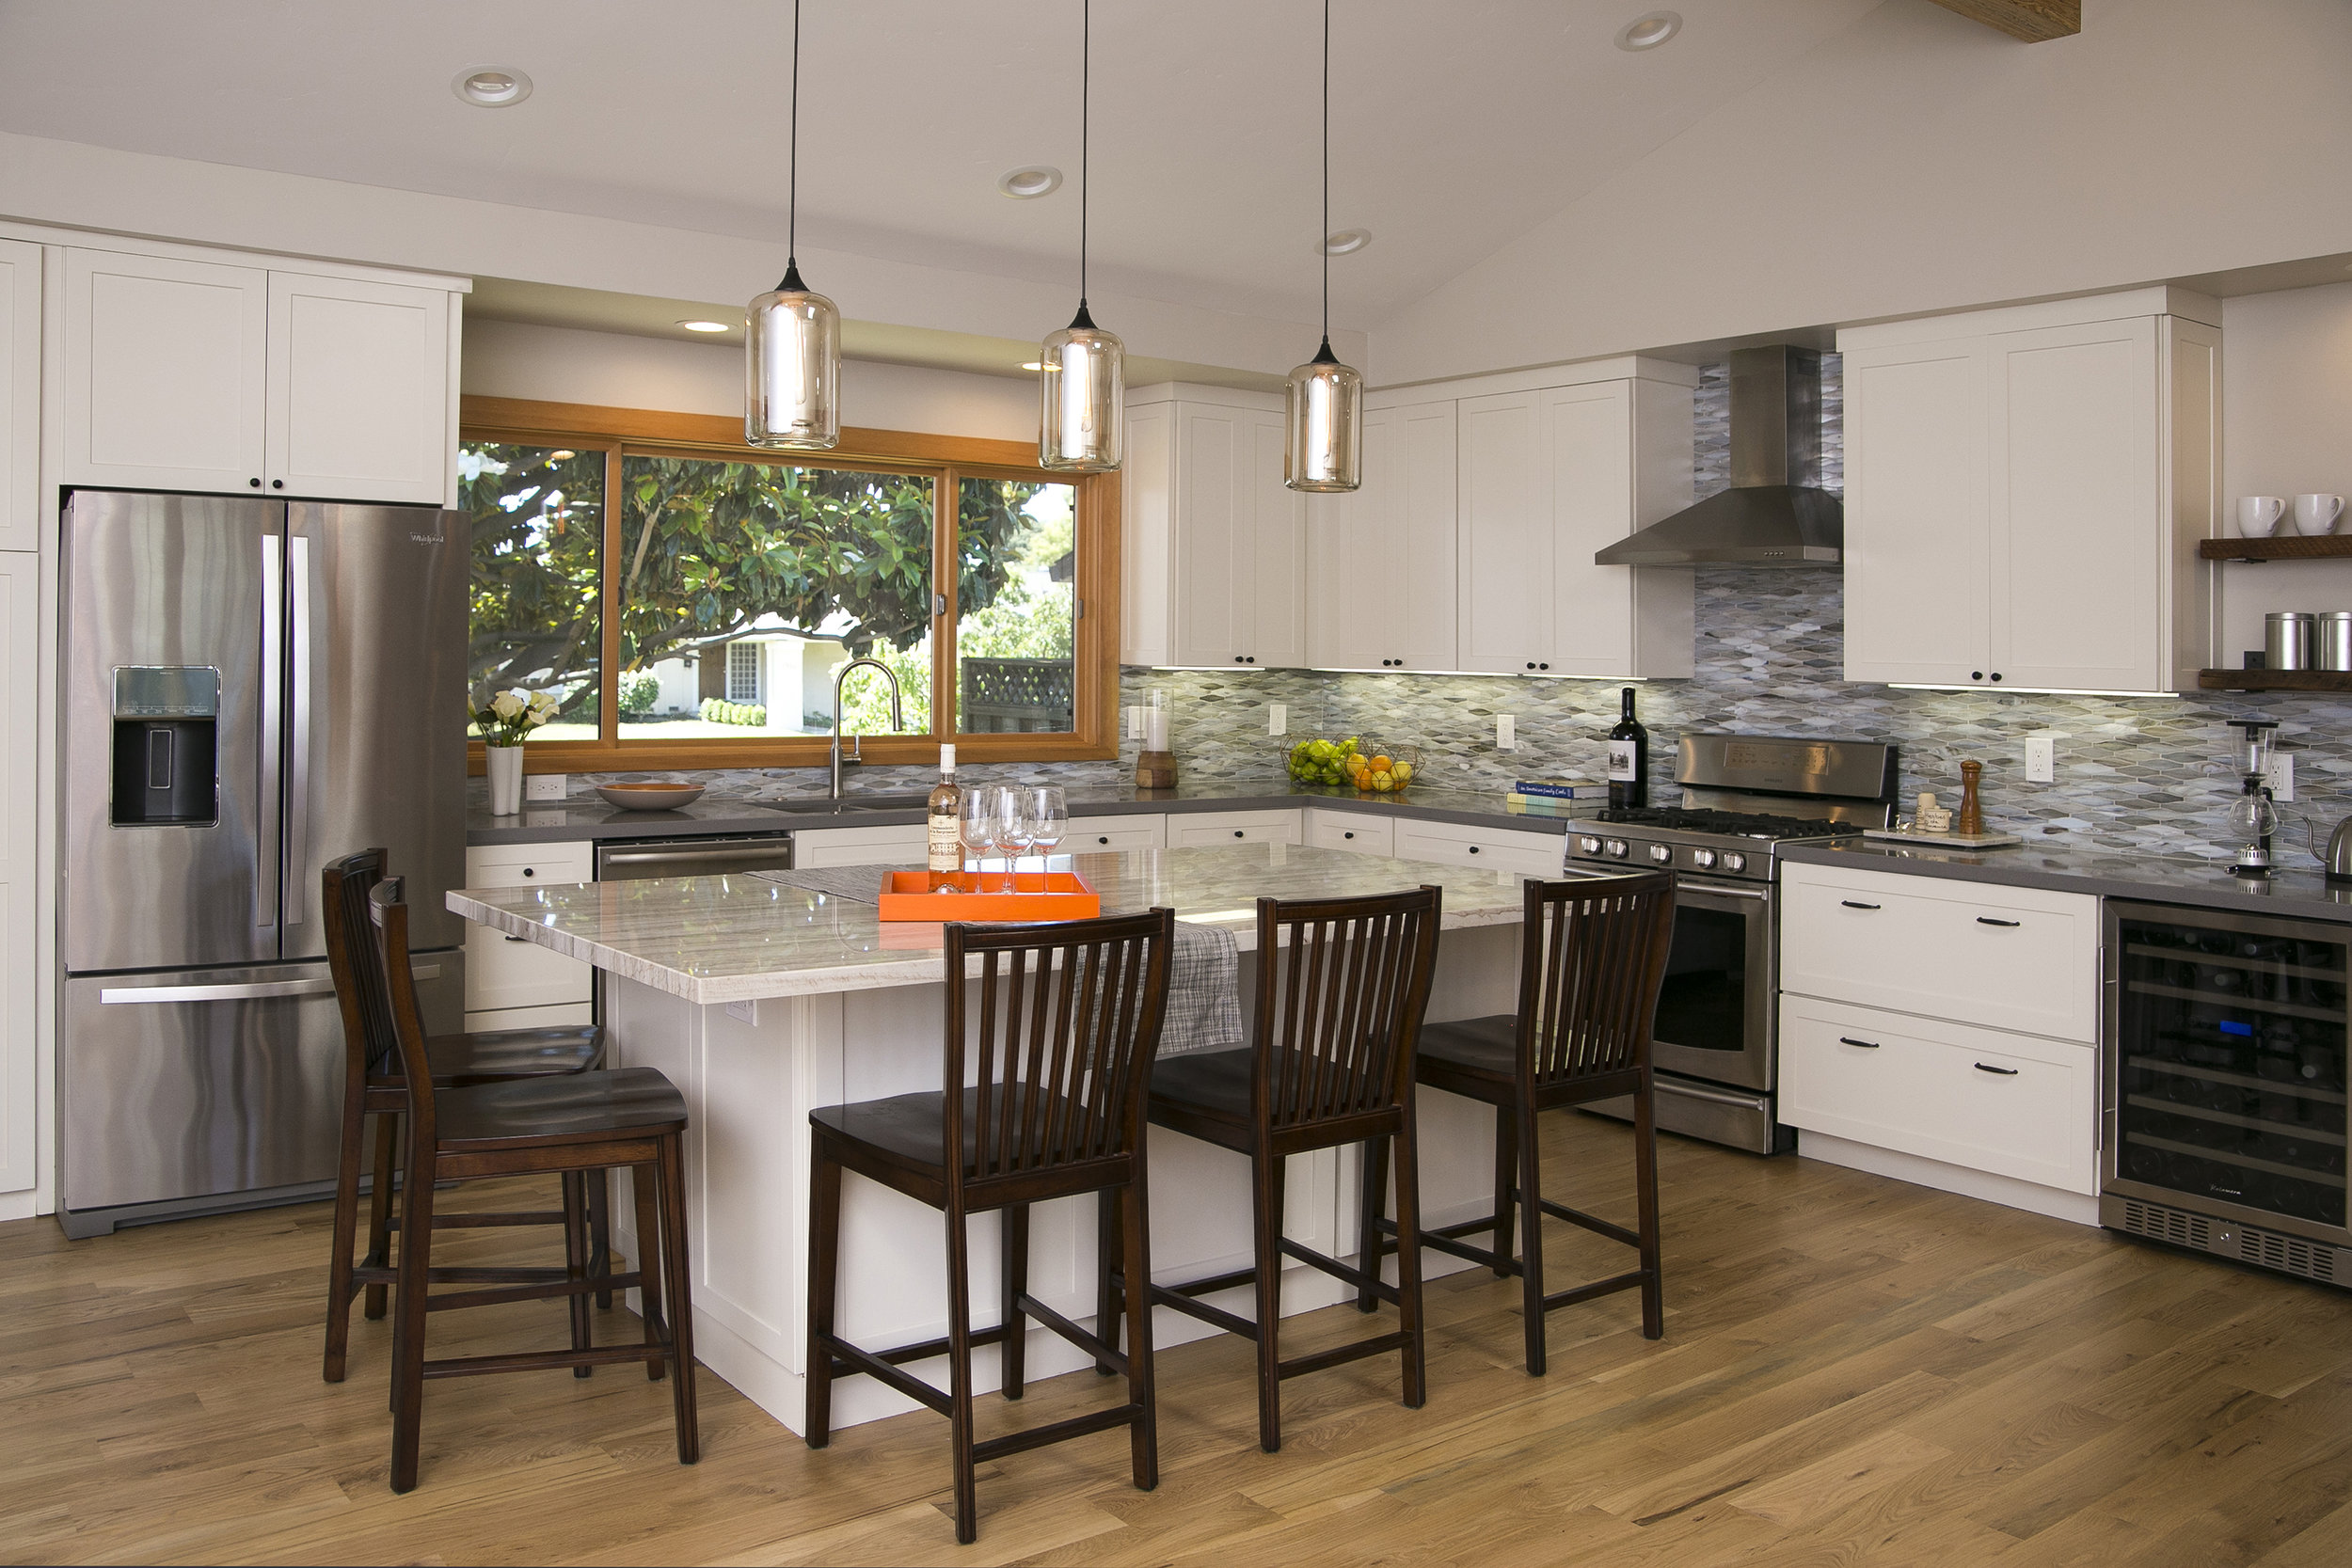 collier_kitchen8.jpg